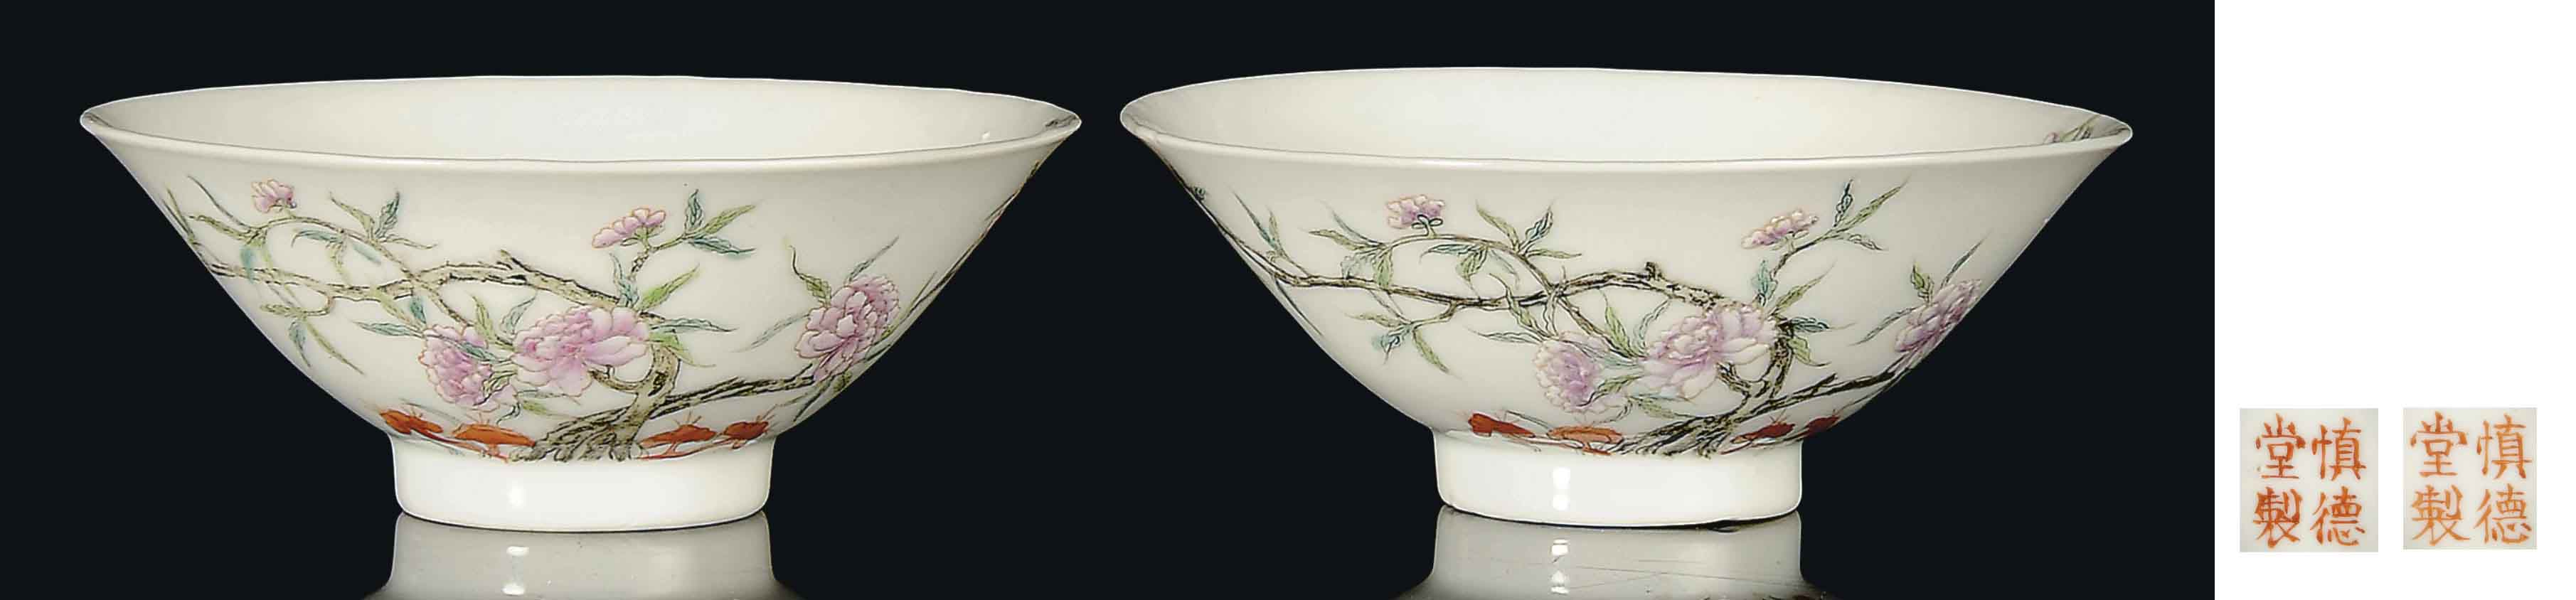 A PAIR OF FAMILLE ROSE FLARING BOWLS